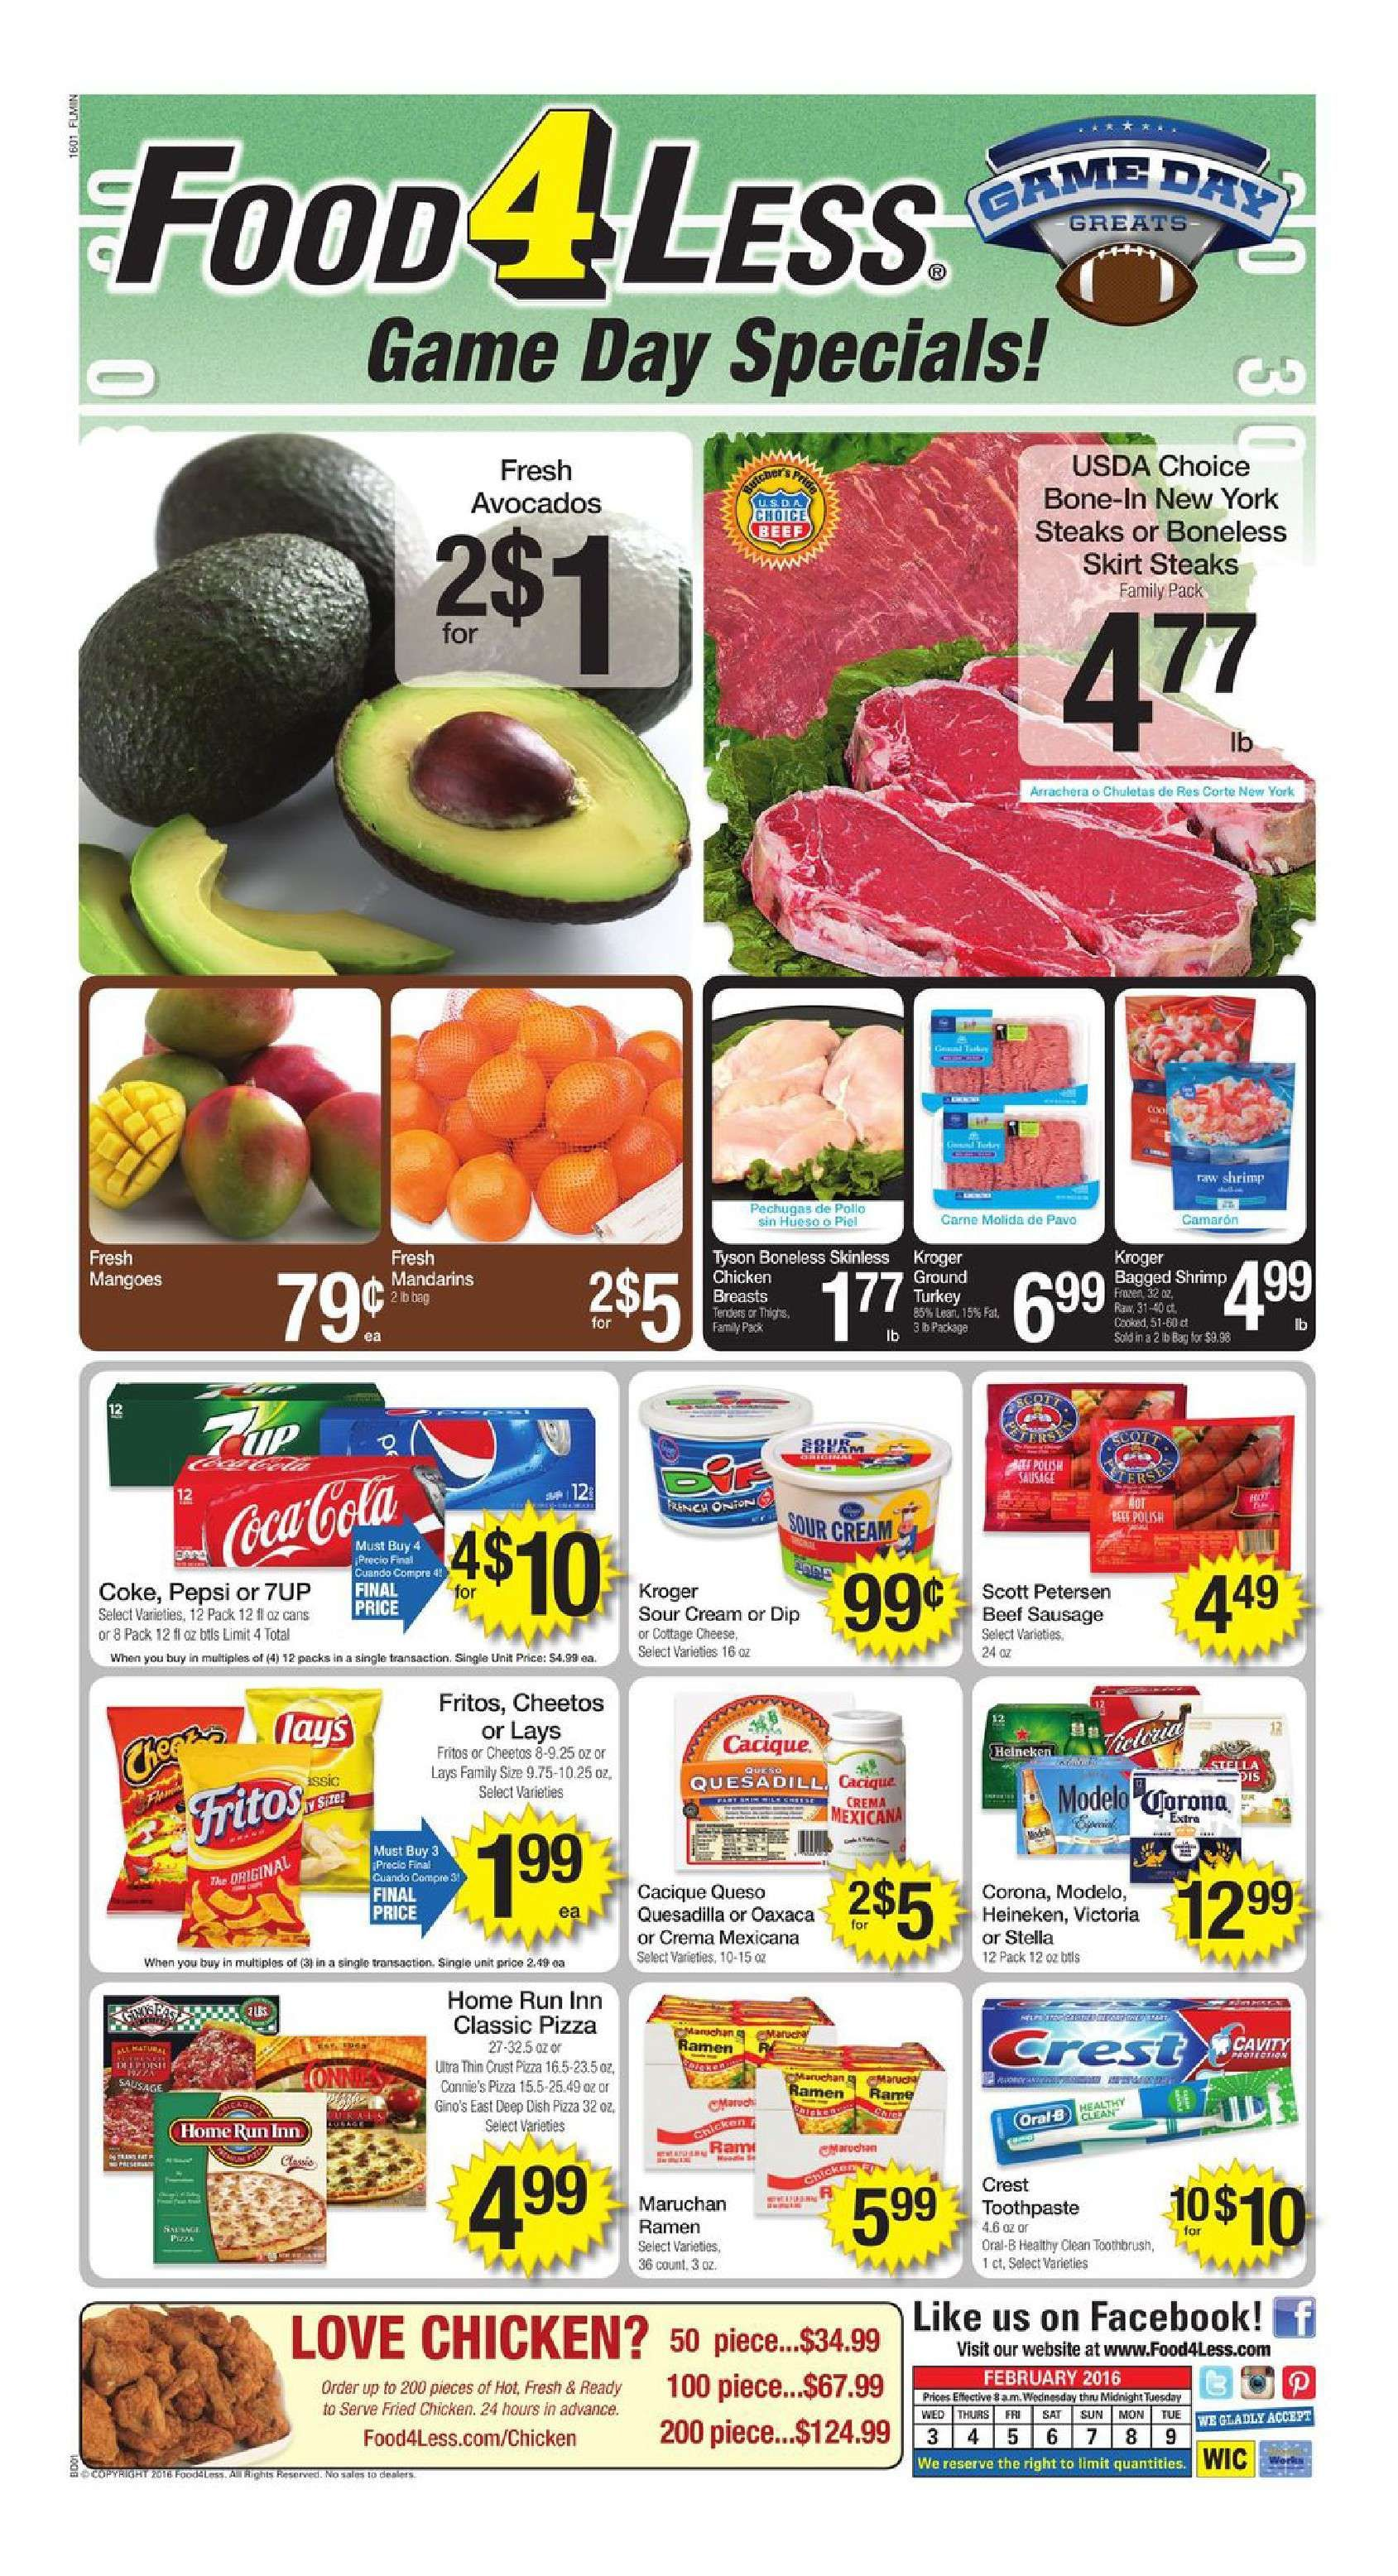 Pin by My Catalog on Weekly Ads Weekly ads